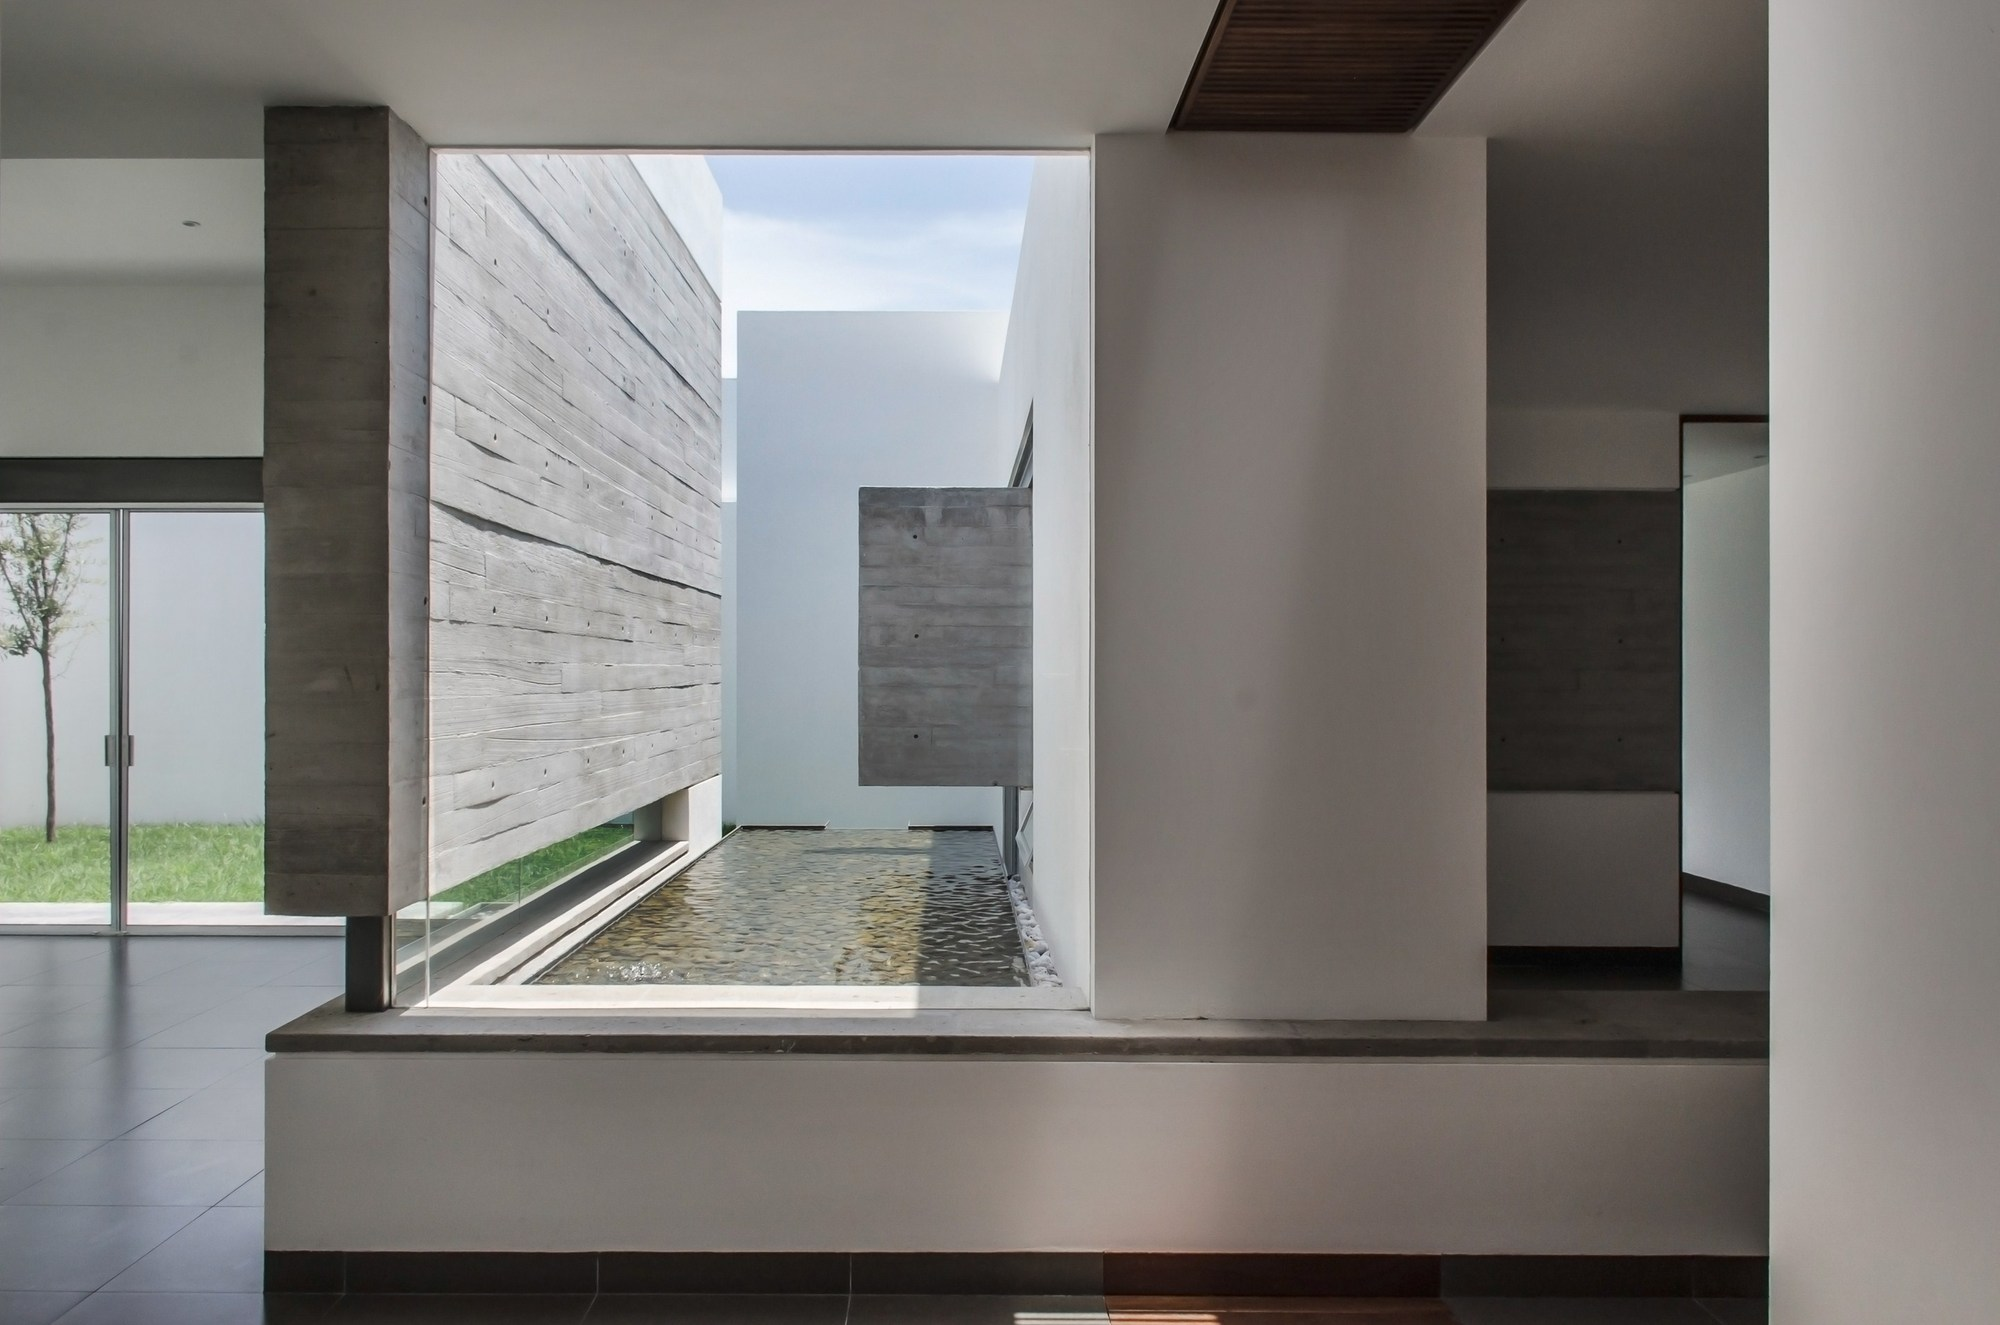 Gallery of t02 adi arquitectura y dise o interior 7 for Adi arquitectura y diseno interior